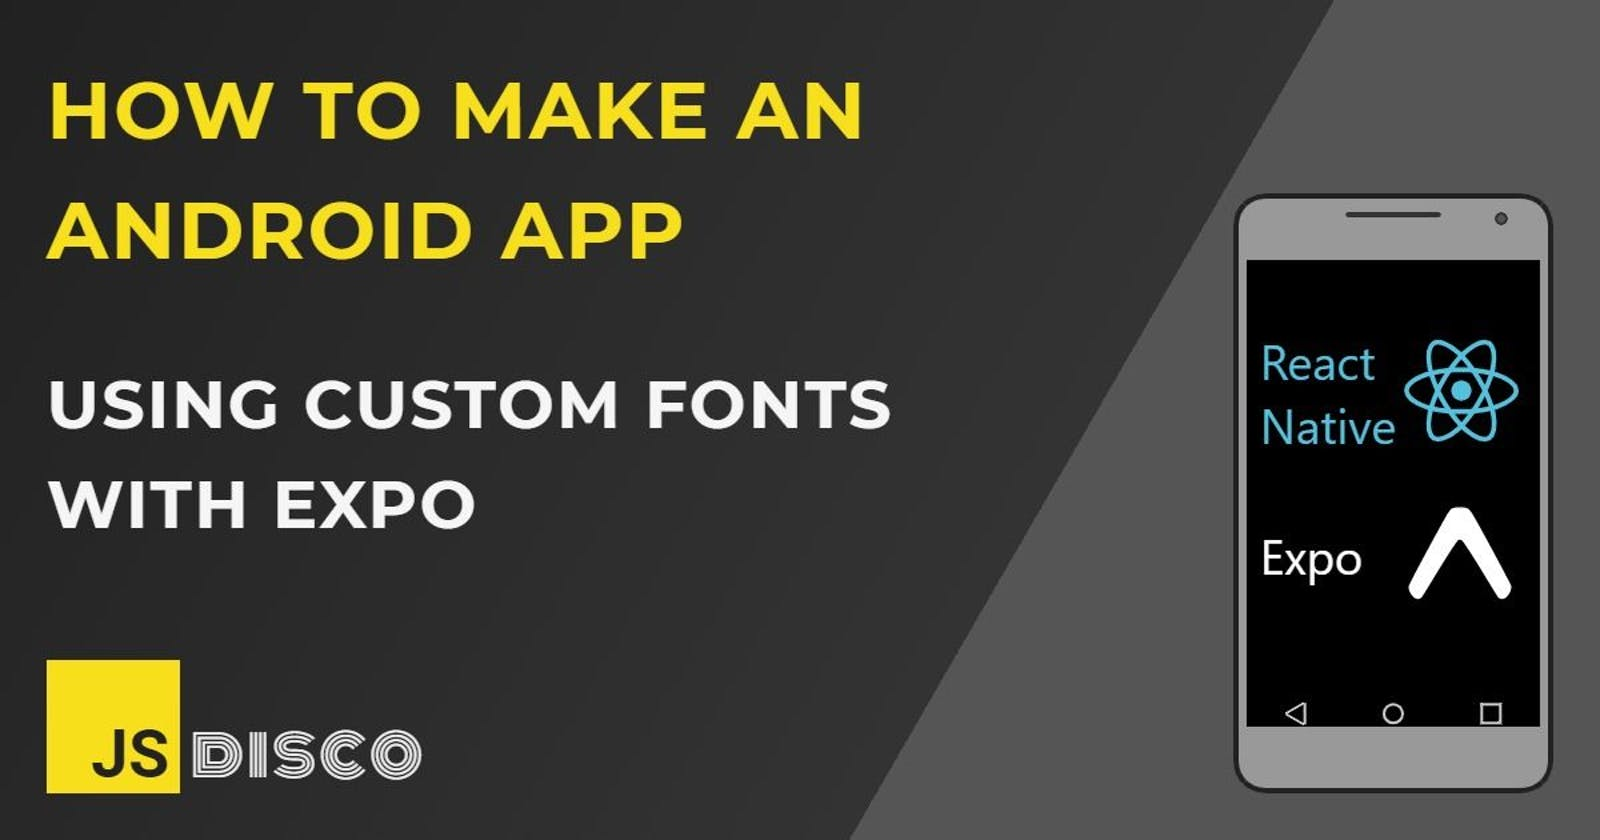 Using Custom Fonts with Expo